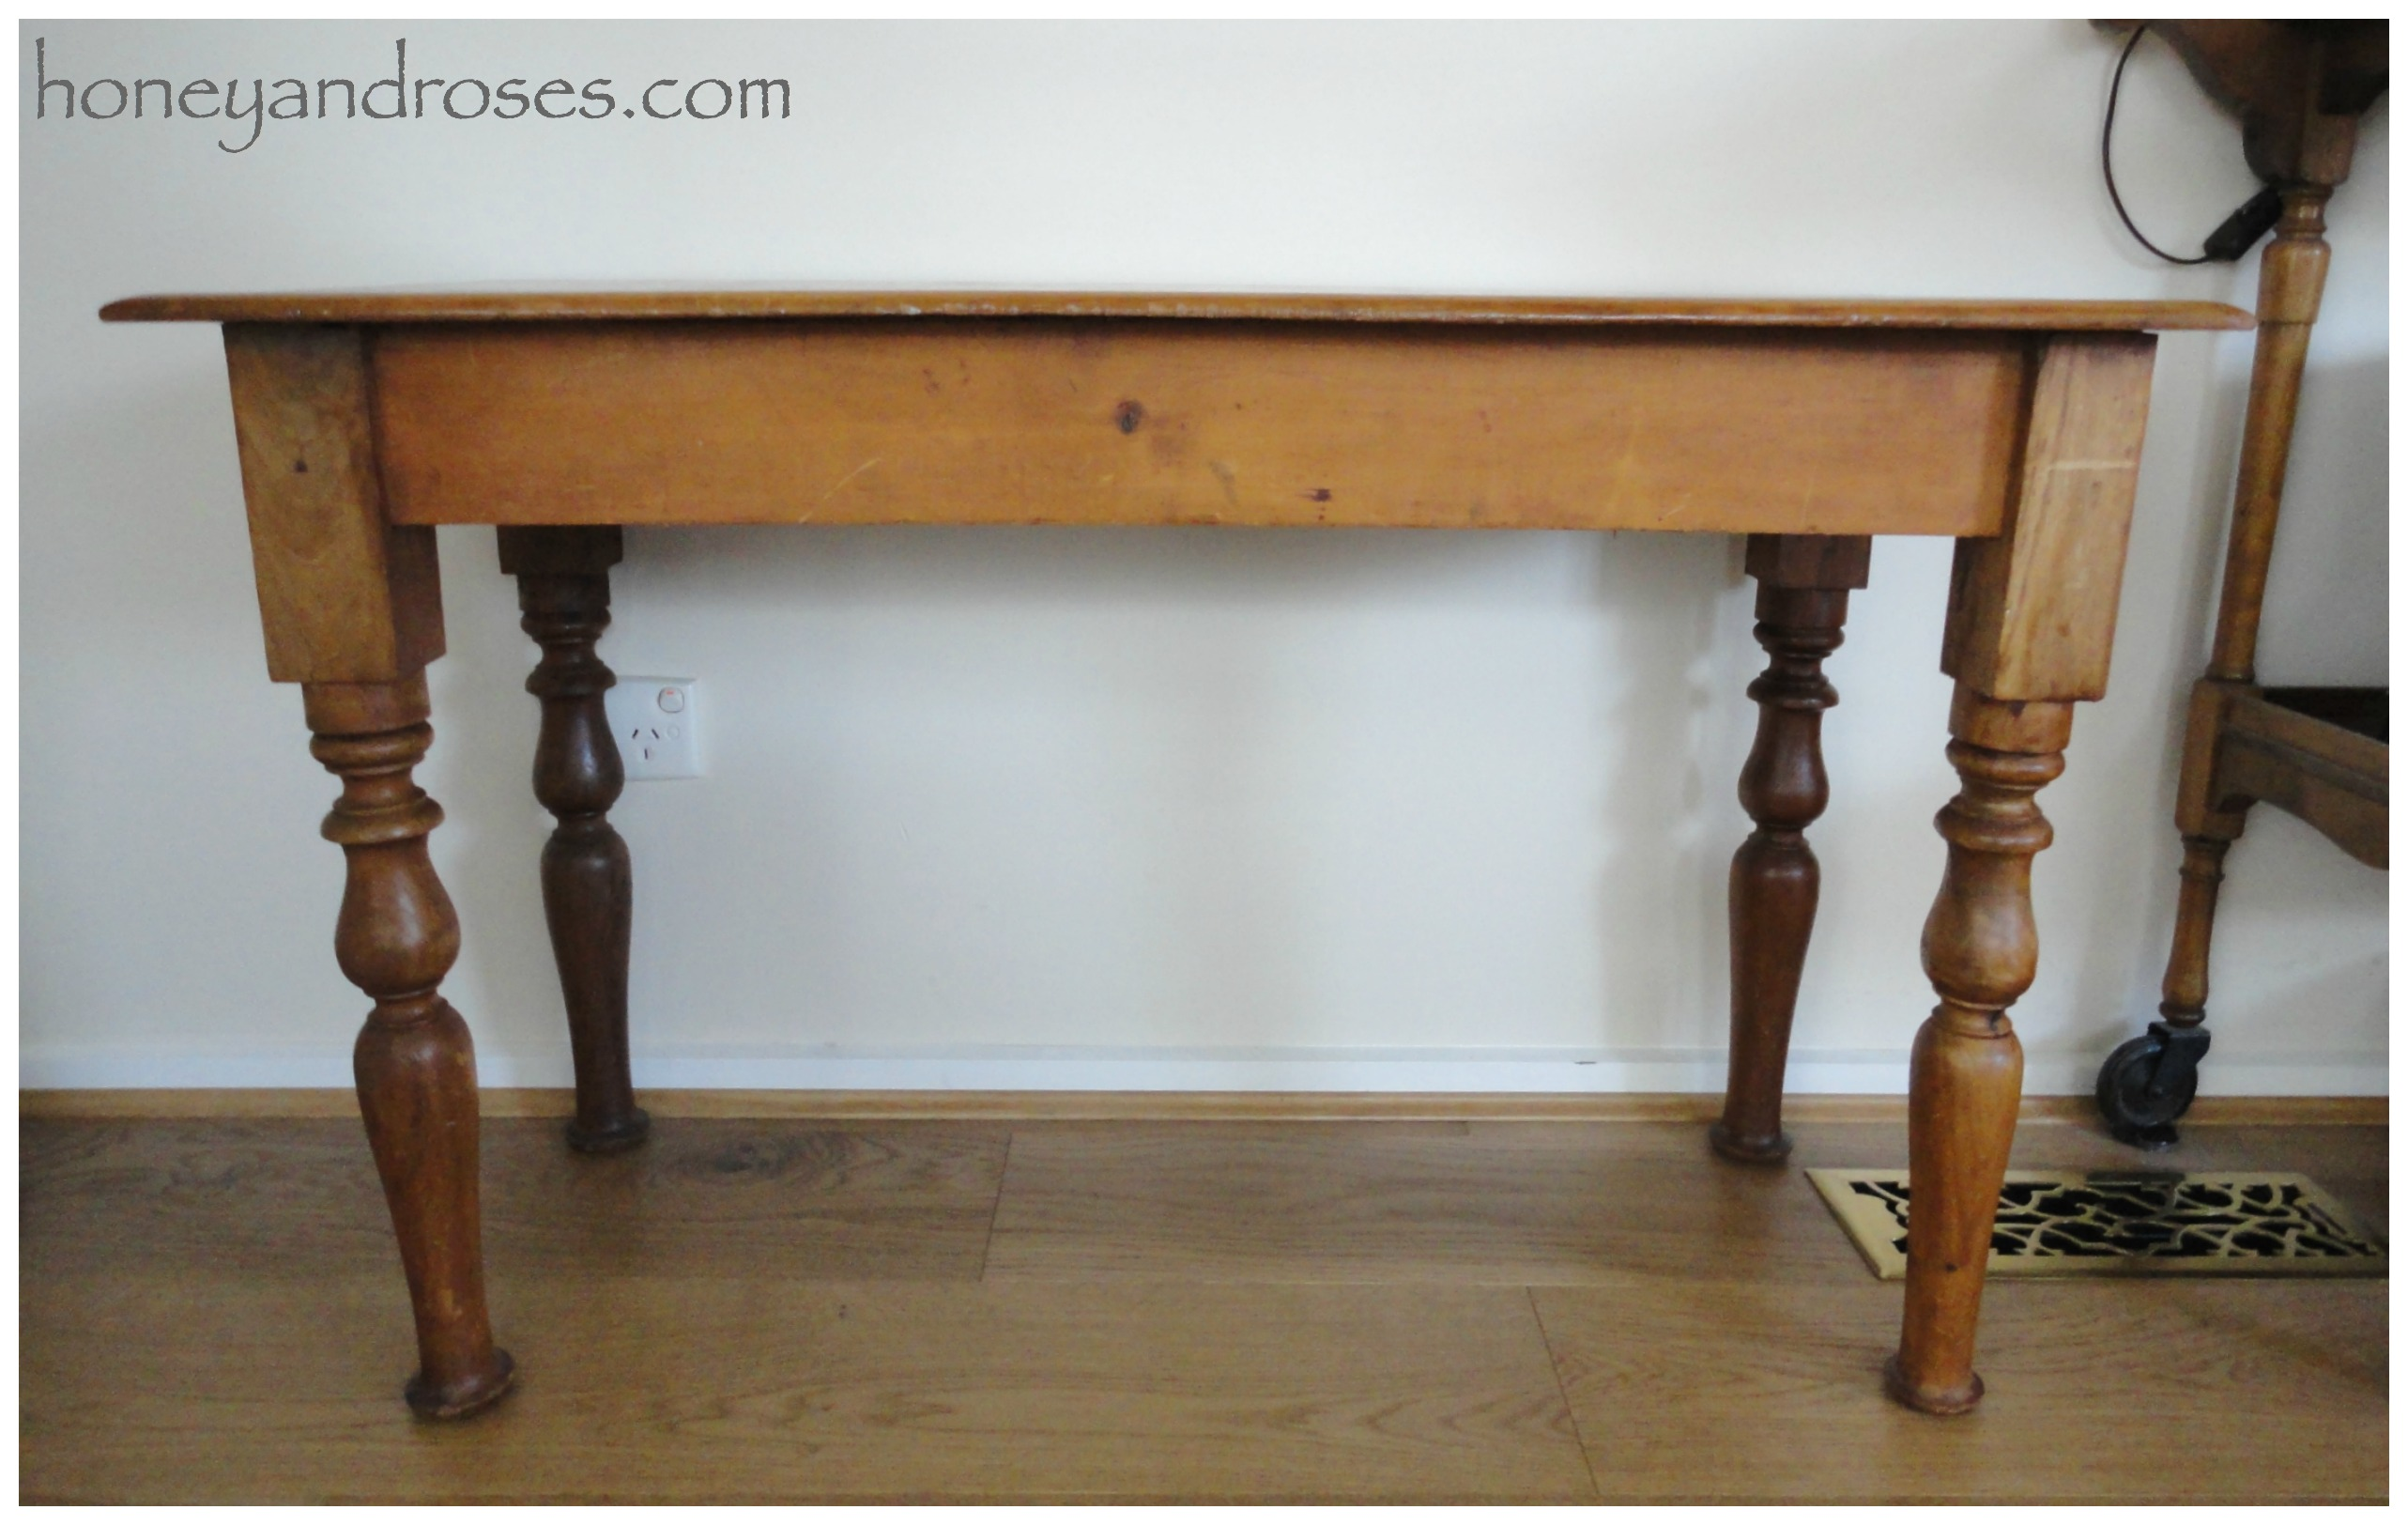 How To Extend The Legs Of A Table | Www.honeyandroses.com